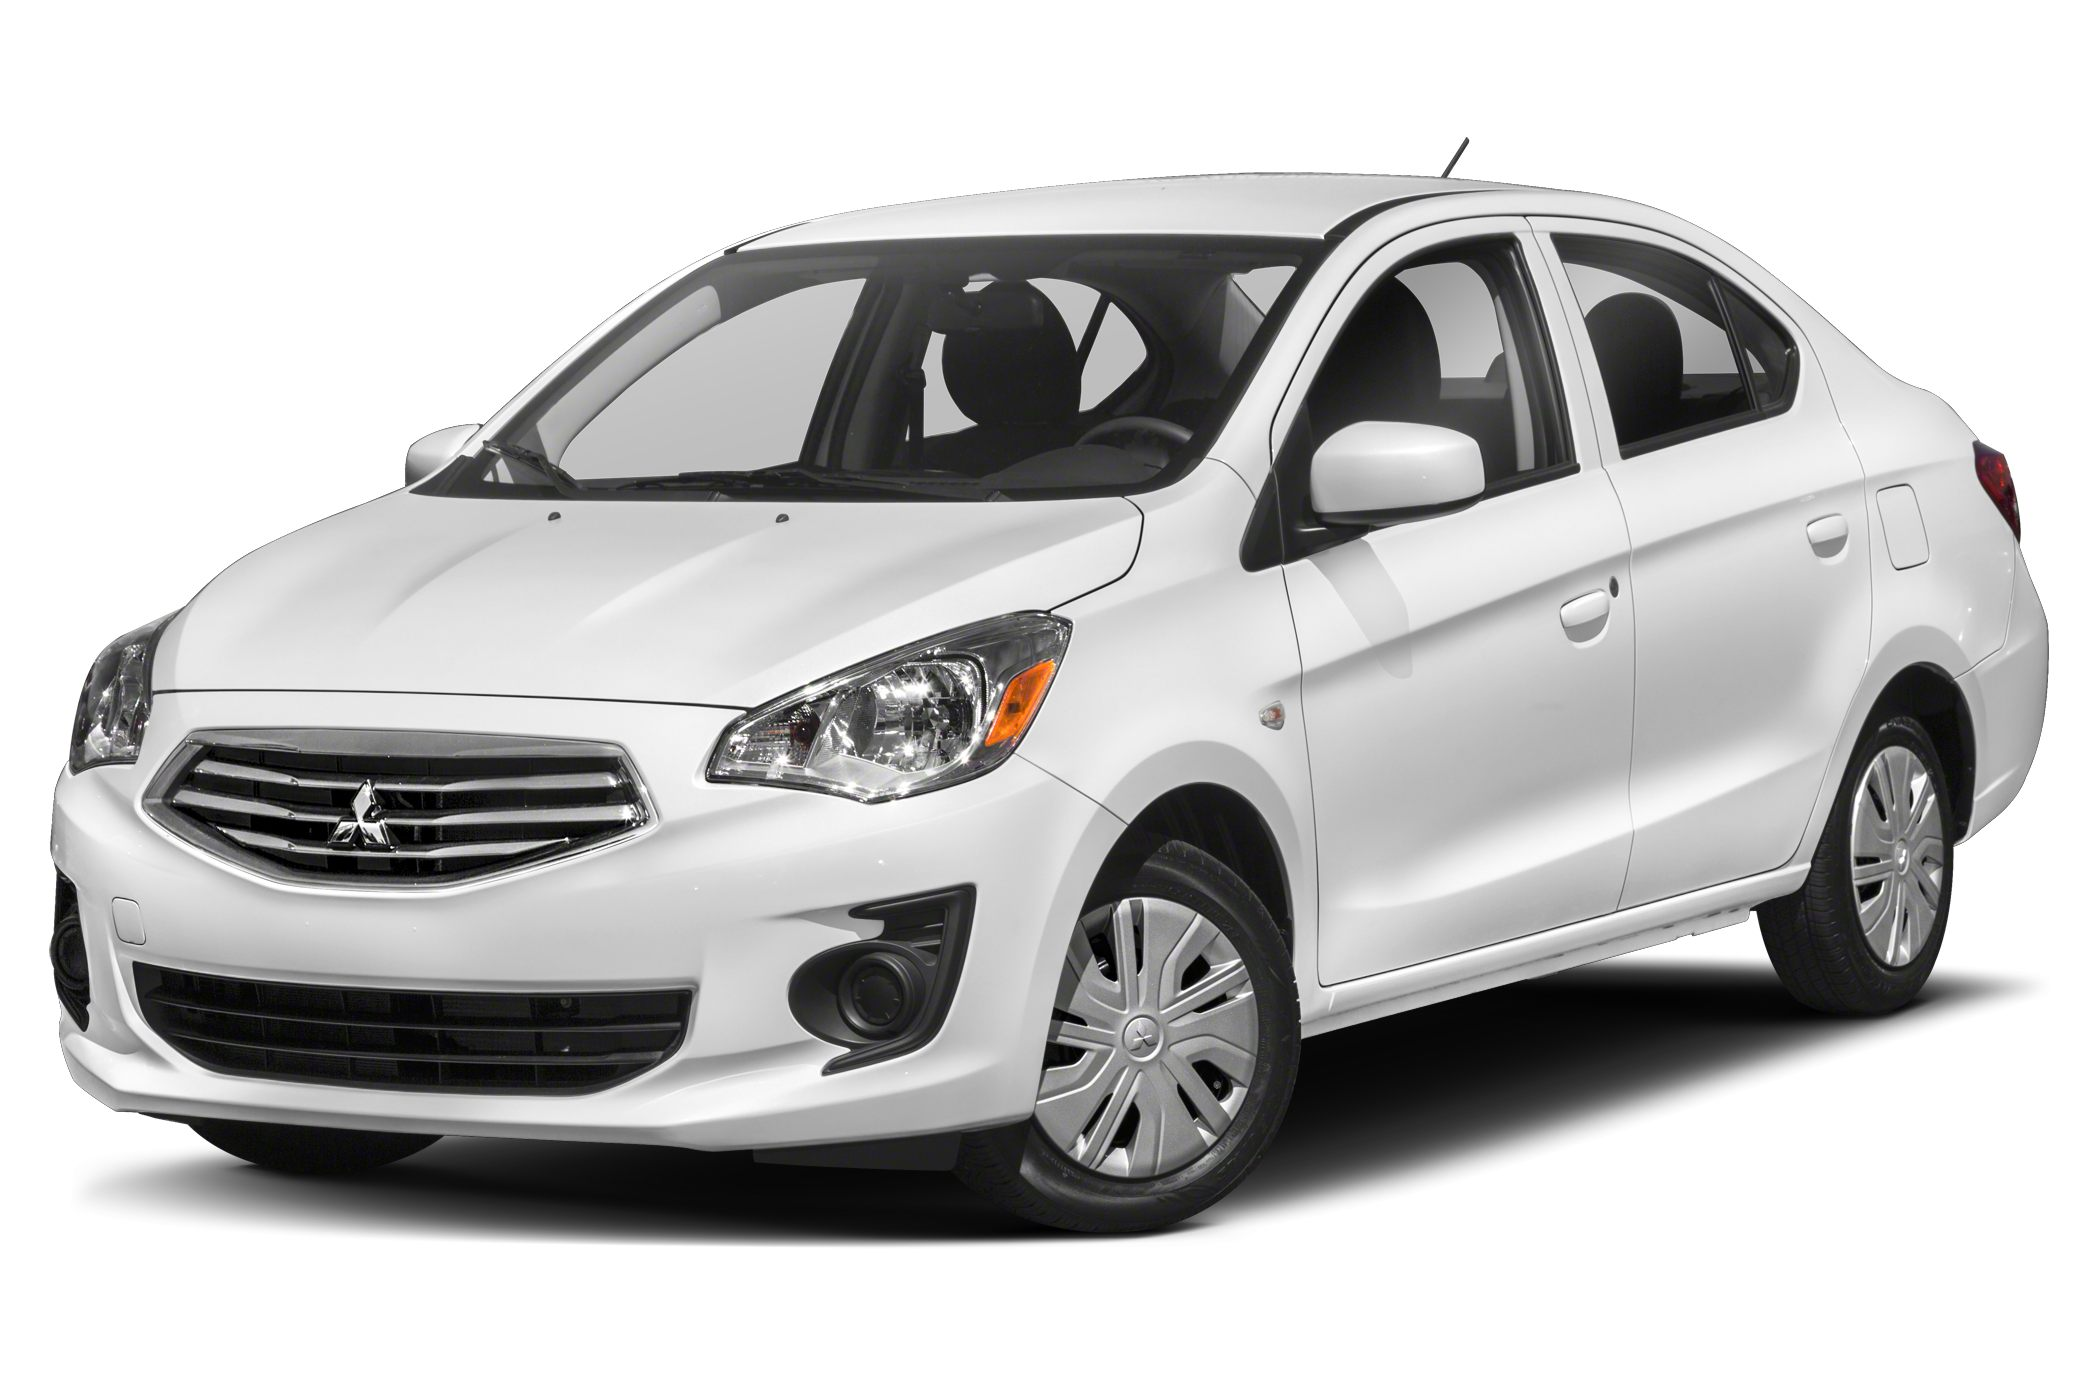 2017 Mitsubishi Mirage G4 ES From its carefully sculpted stylish exterior to its fuel sipping 43 m